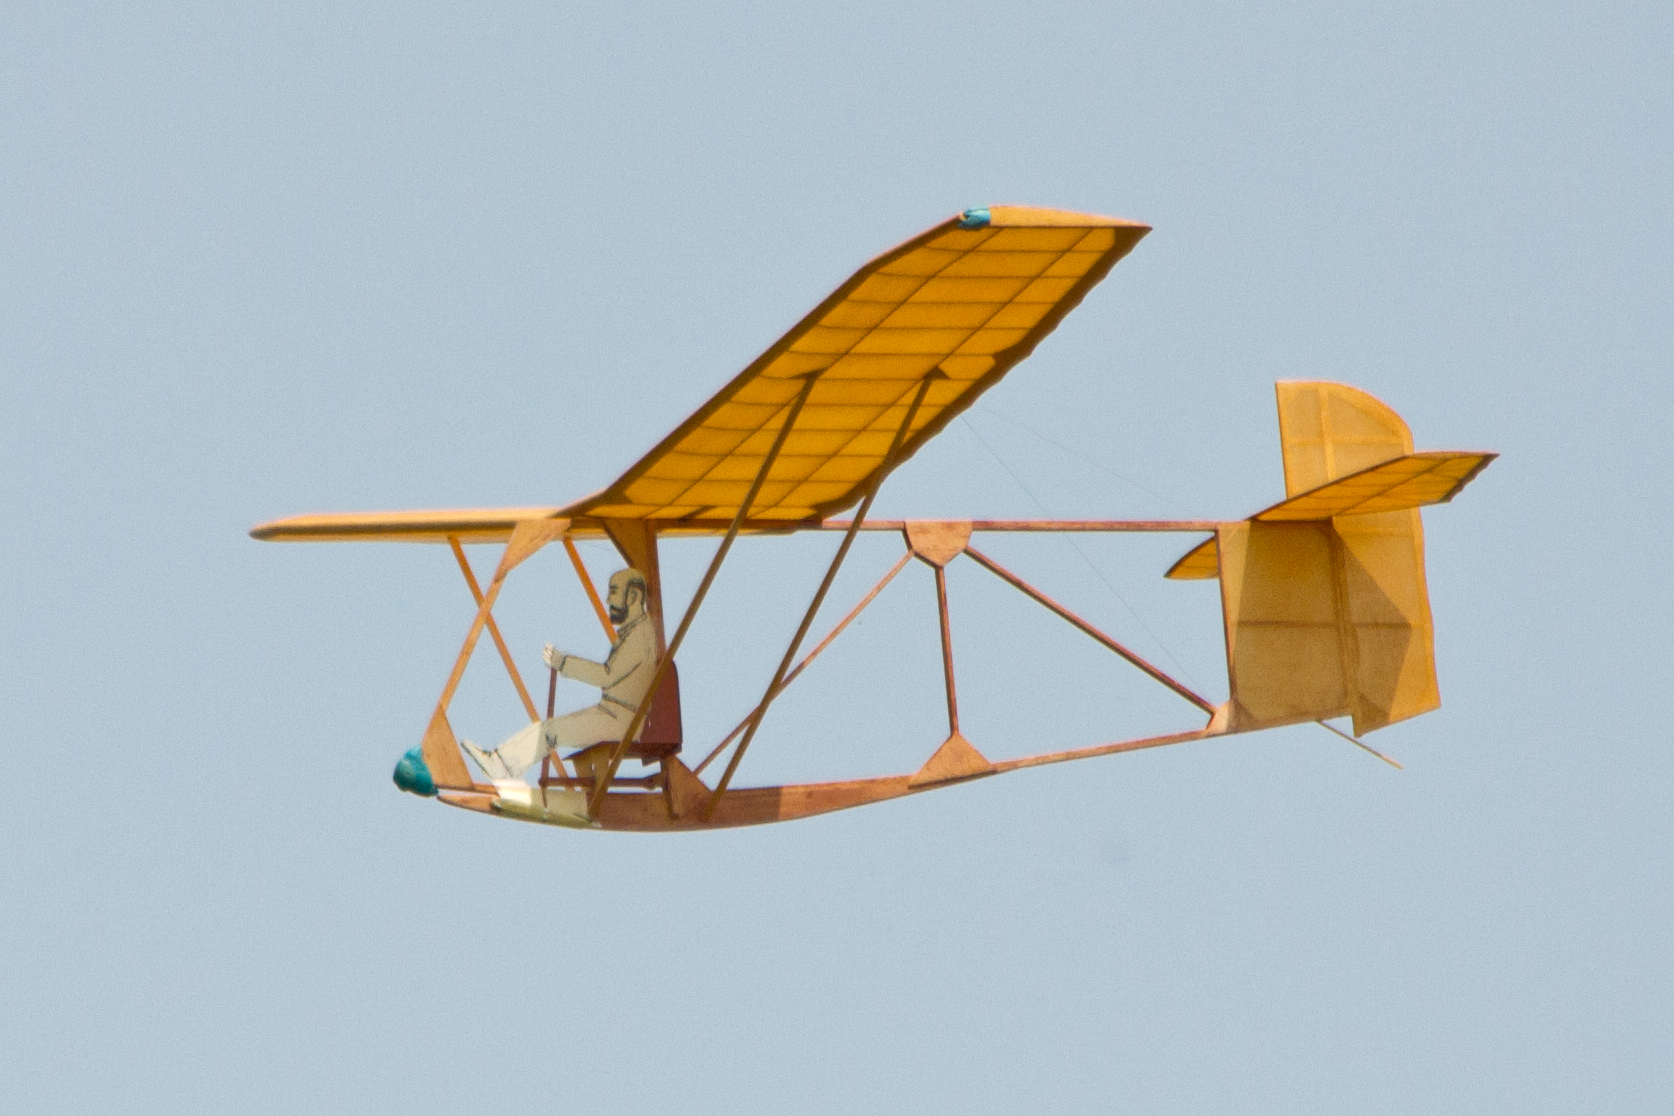 free flight rubber powered model airplanes